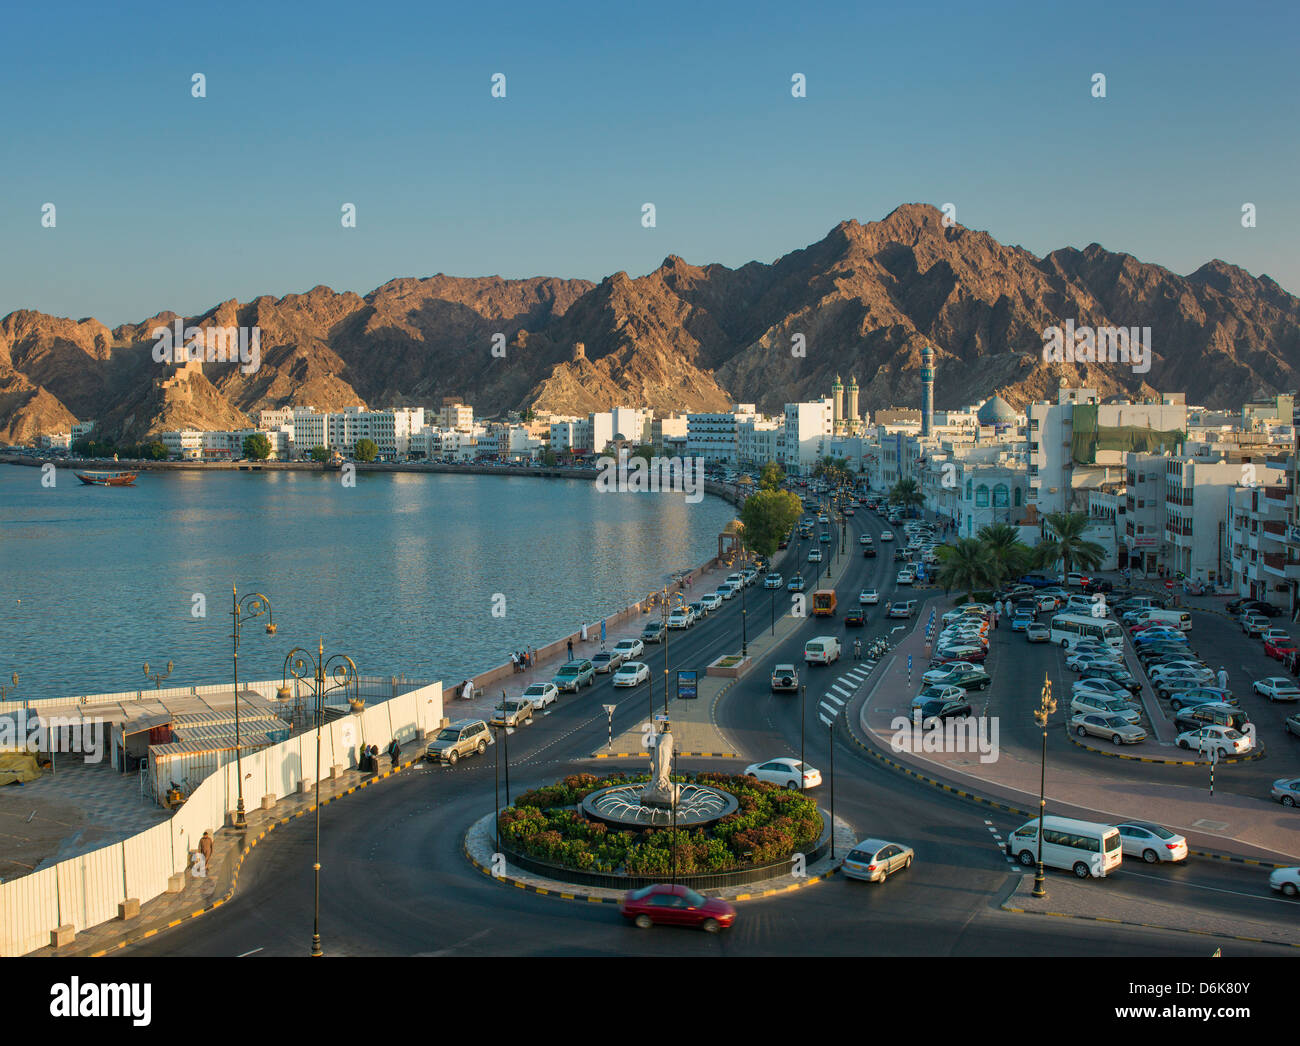 Mutthra district, Muscat, Oman, Middle East Photo Stock